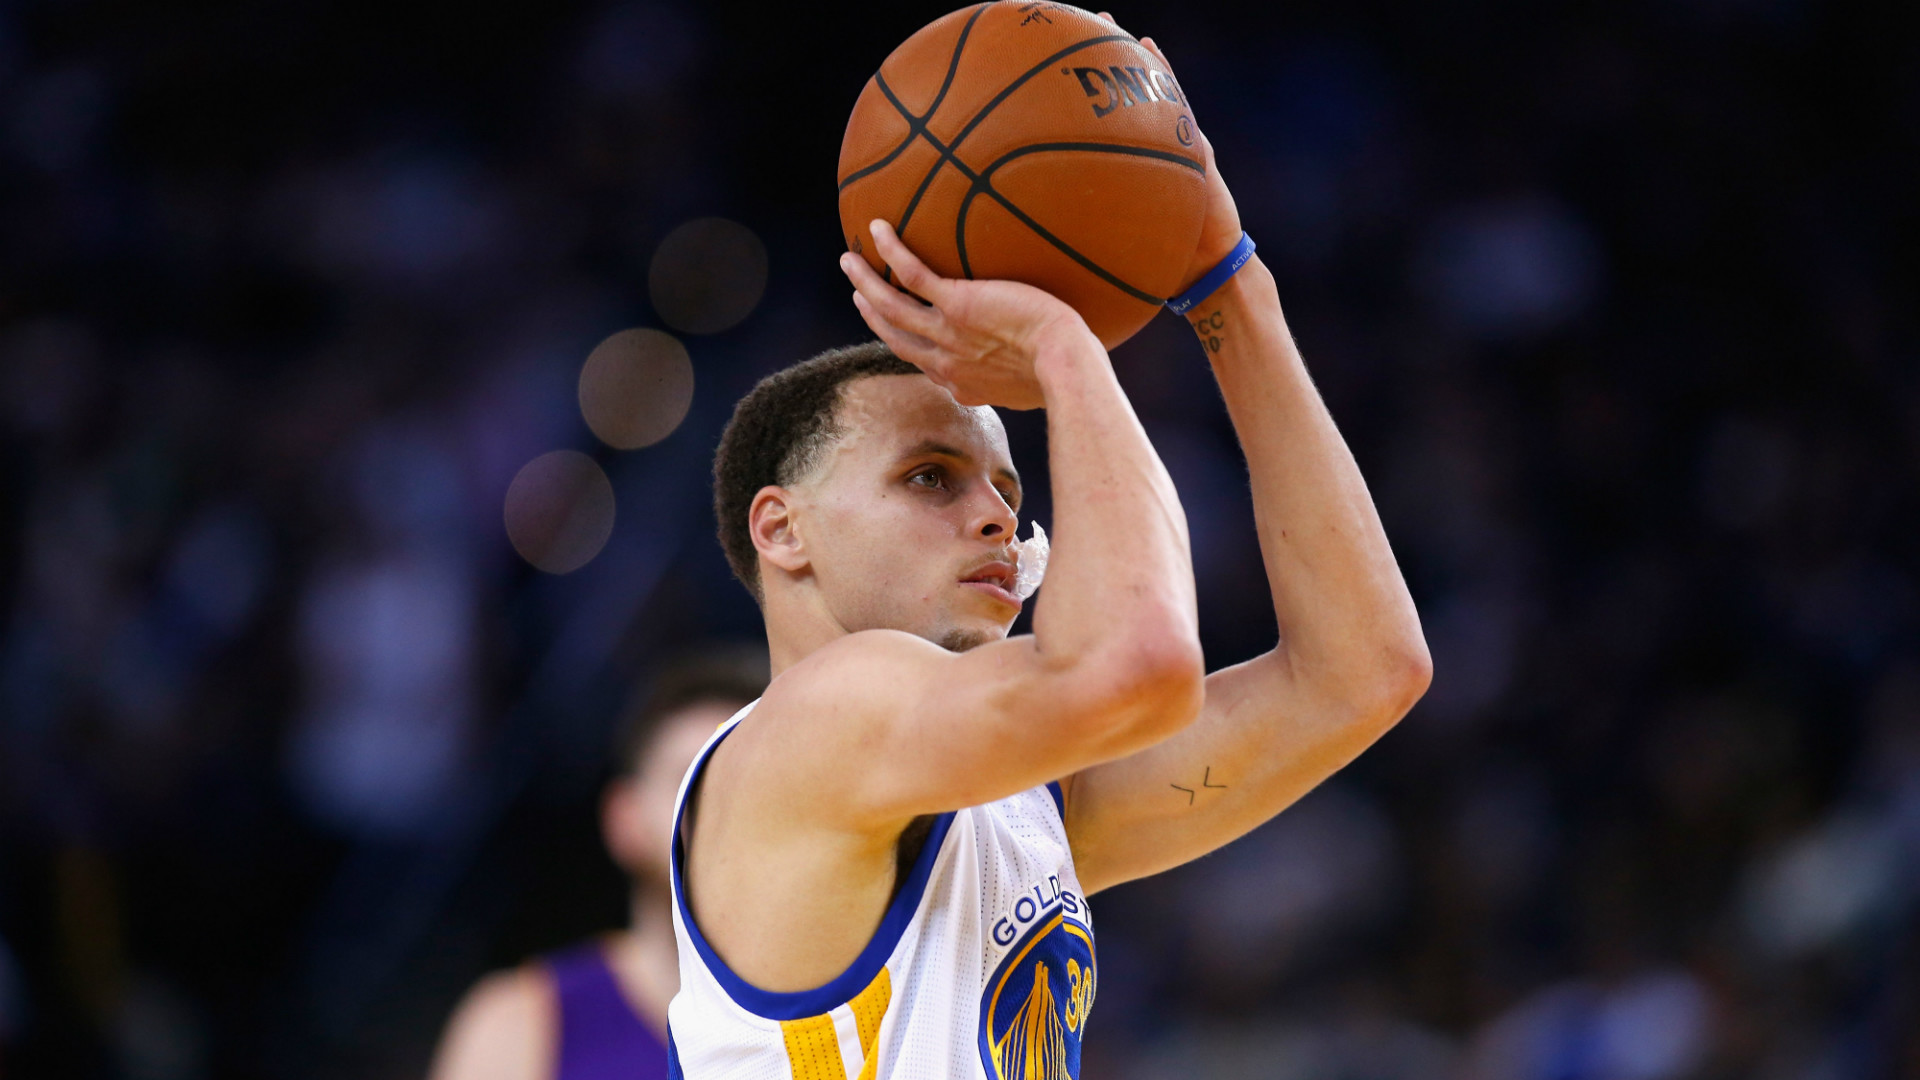 … hd smokescreen; stephen curry wallpapers images photos pictures  backgrounds …